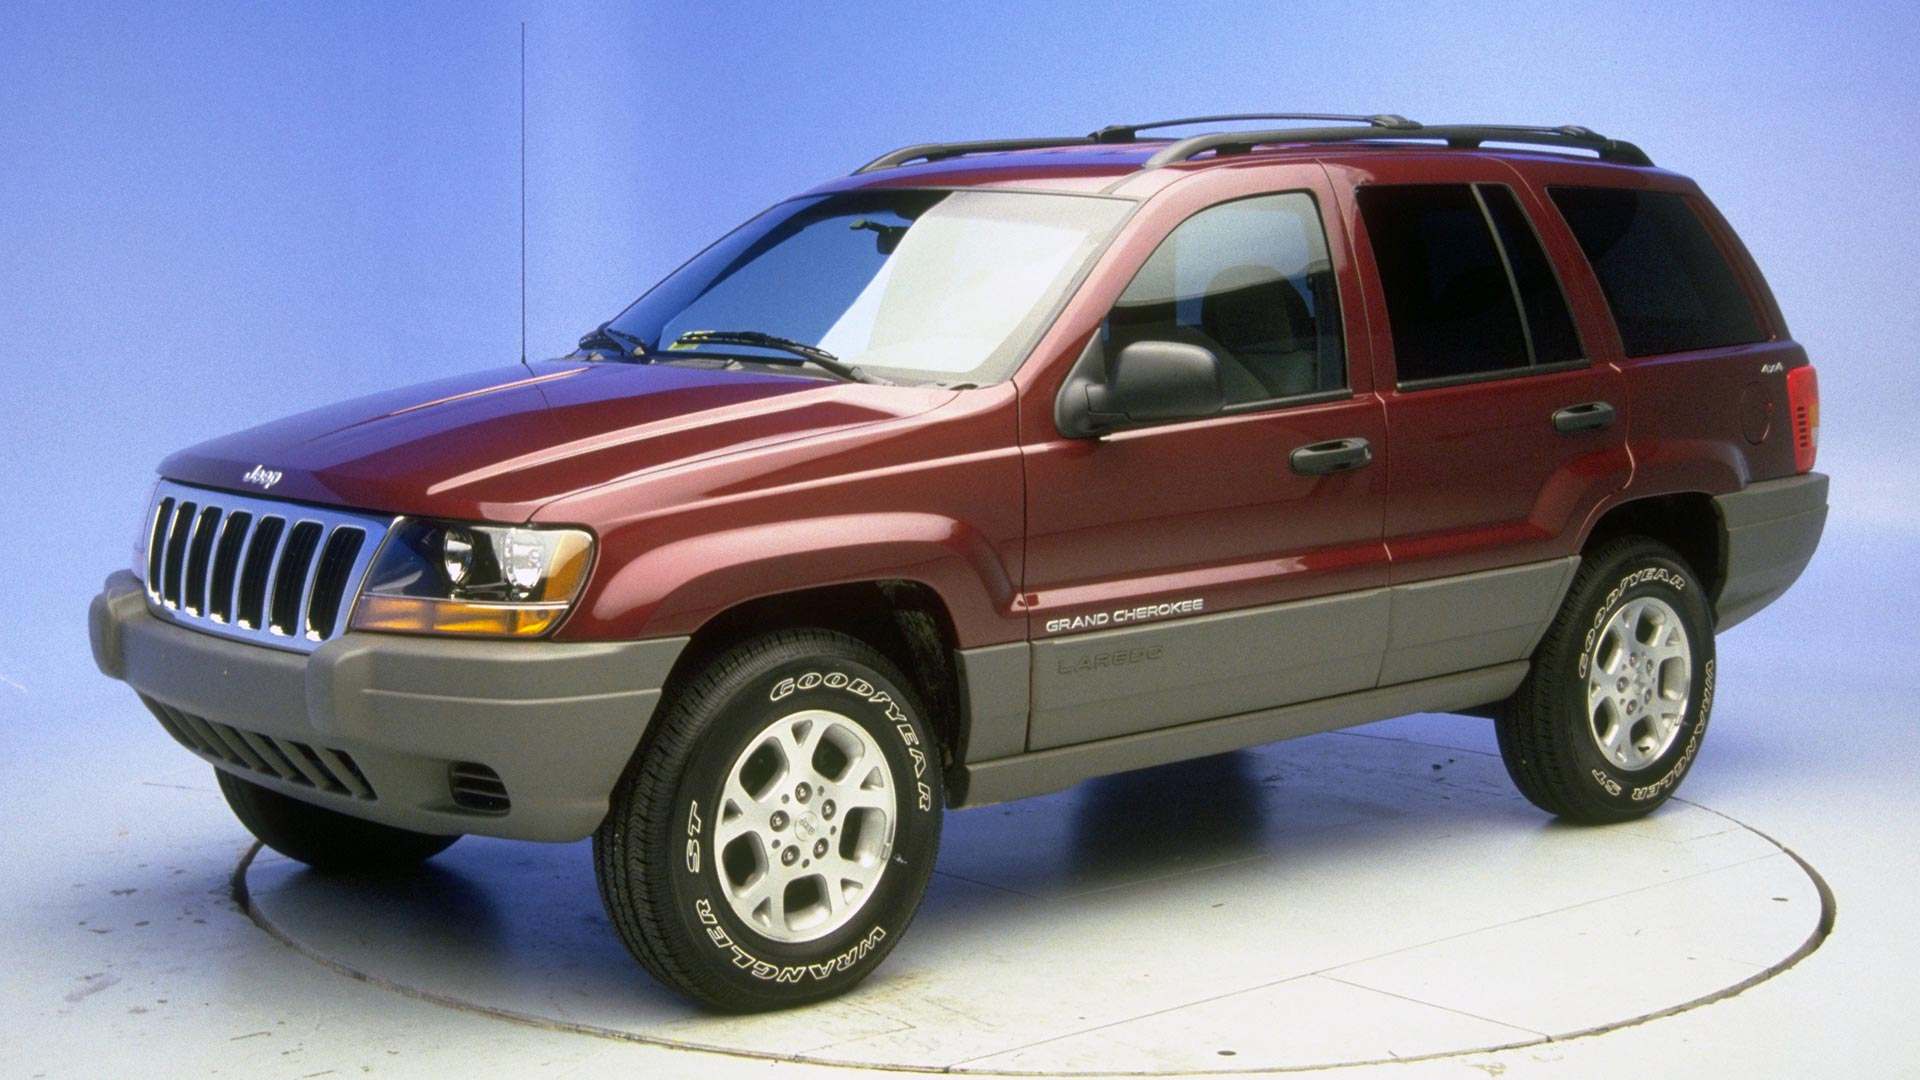 2003 Jeep Grand Cherokee 4-door SUV